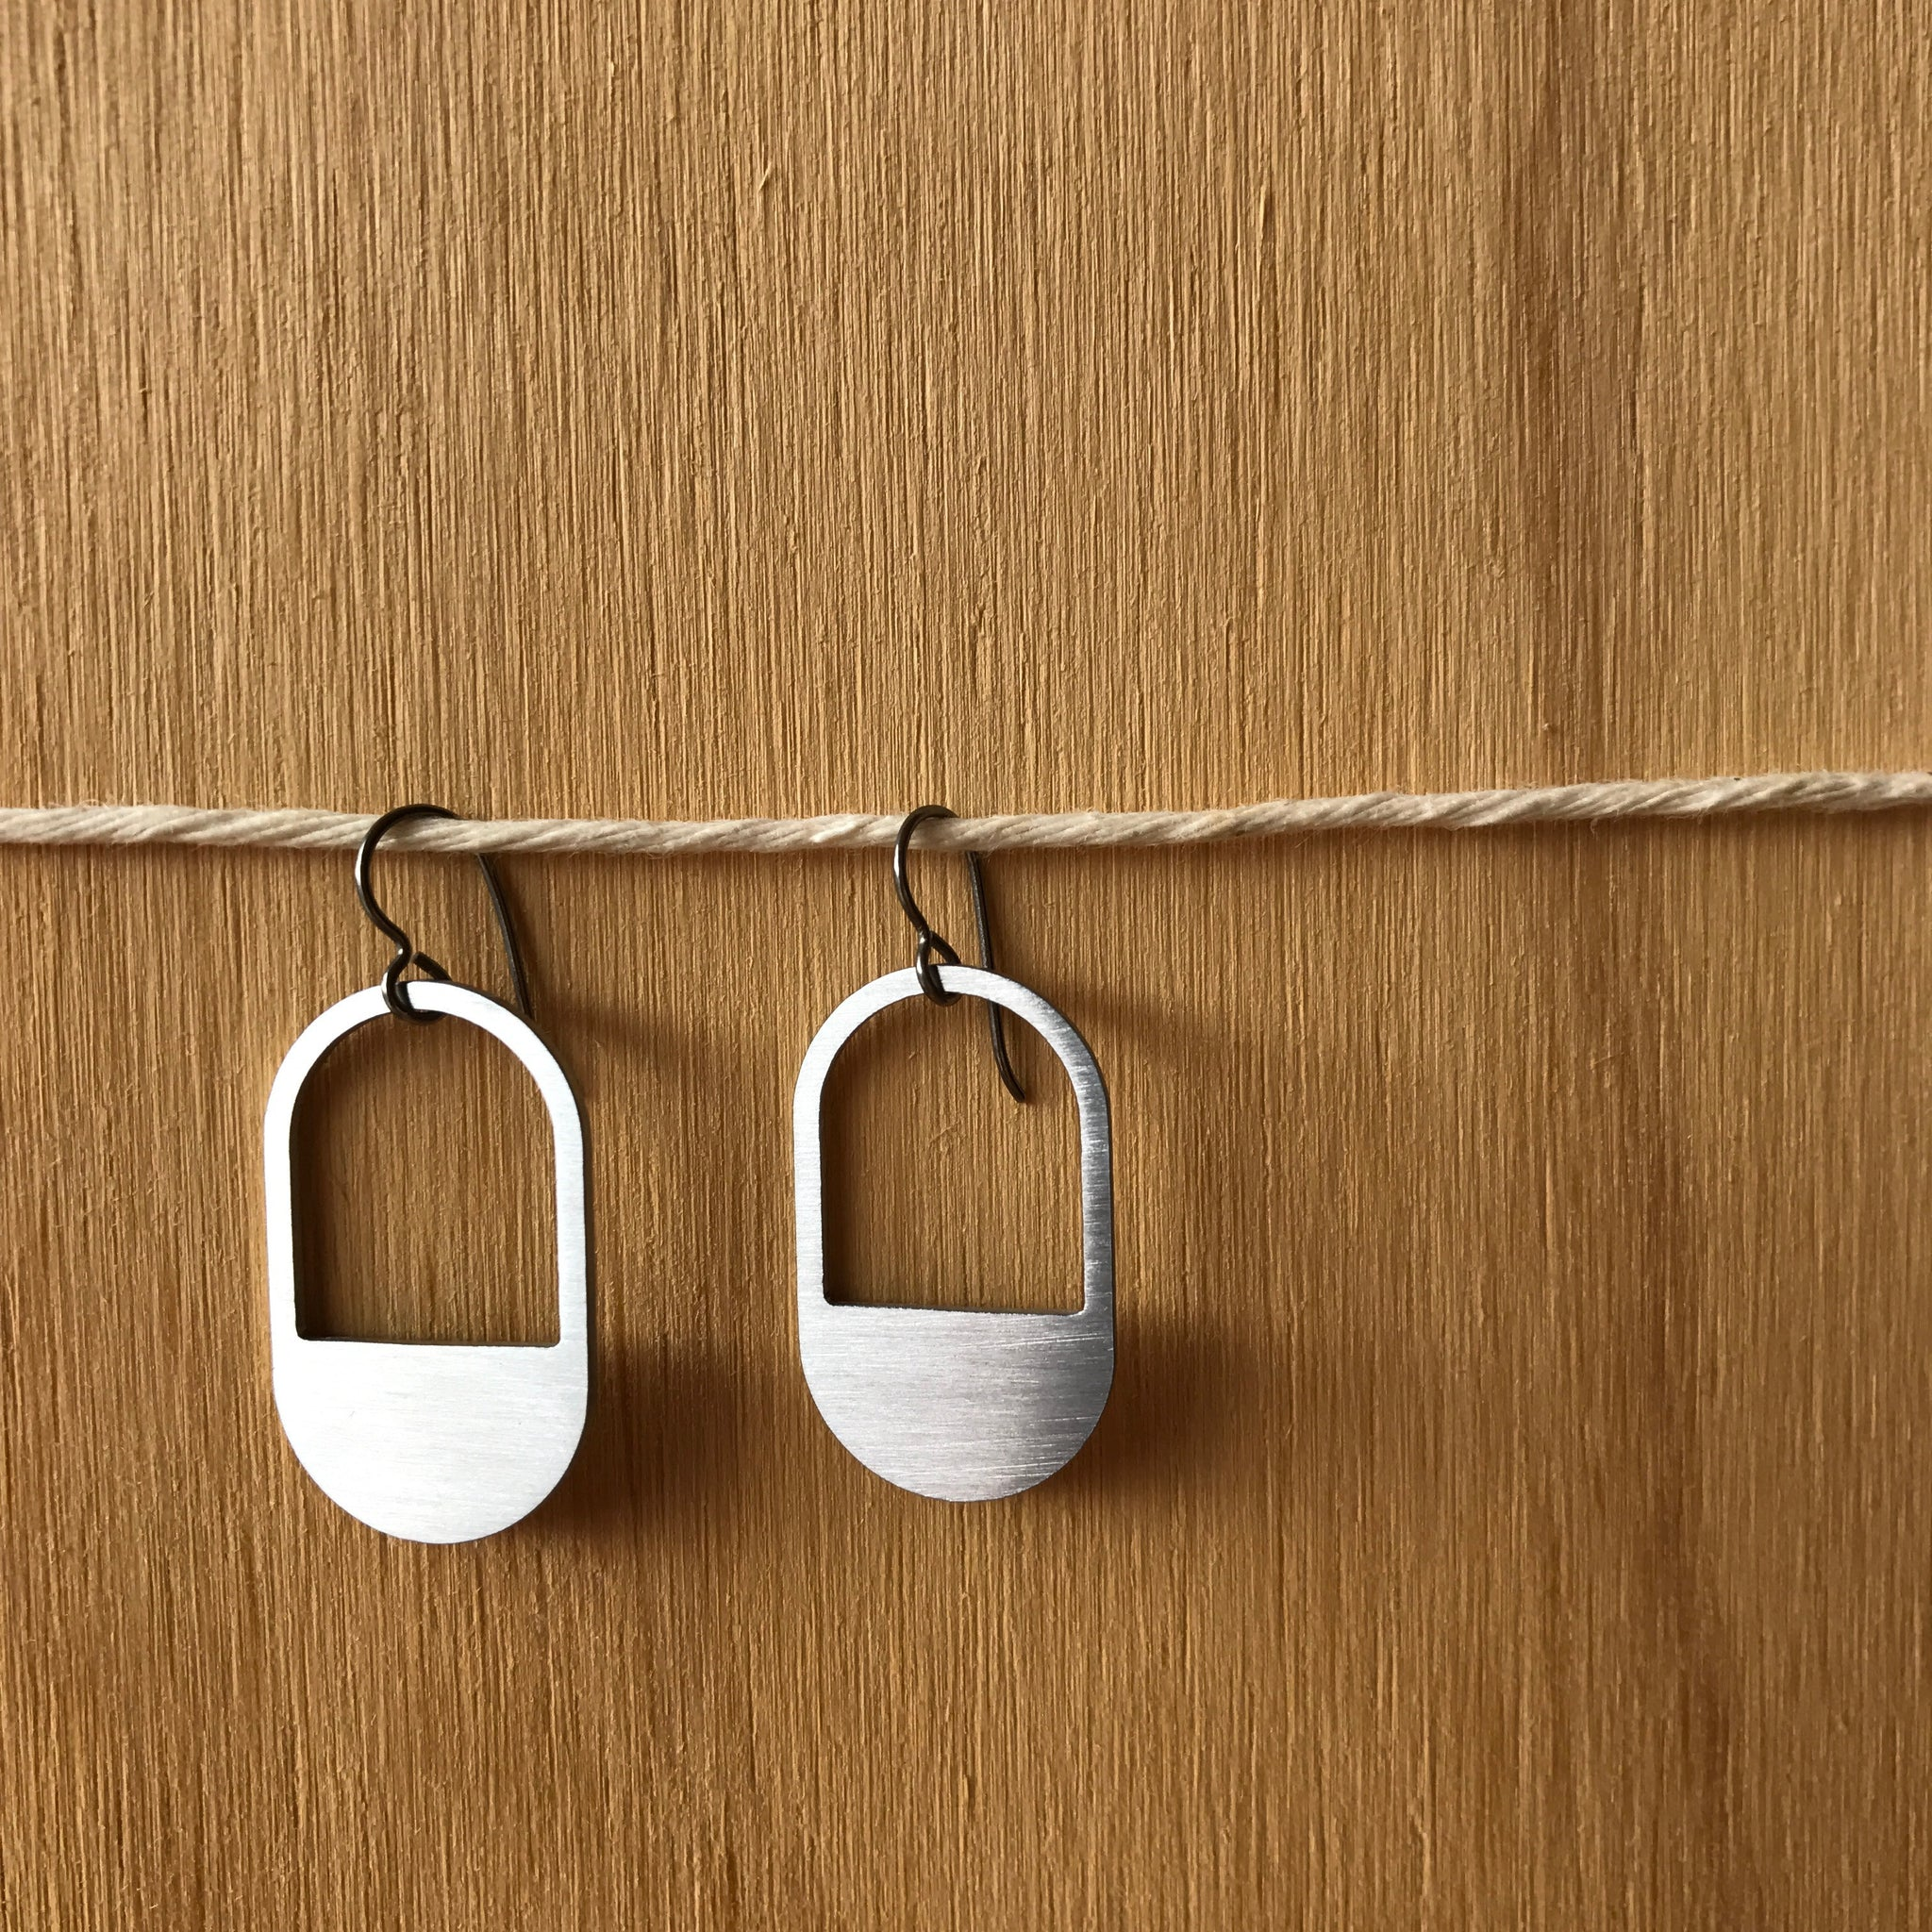 The Dangle Capsule Stainless Steel Hook Earrings by Days of August